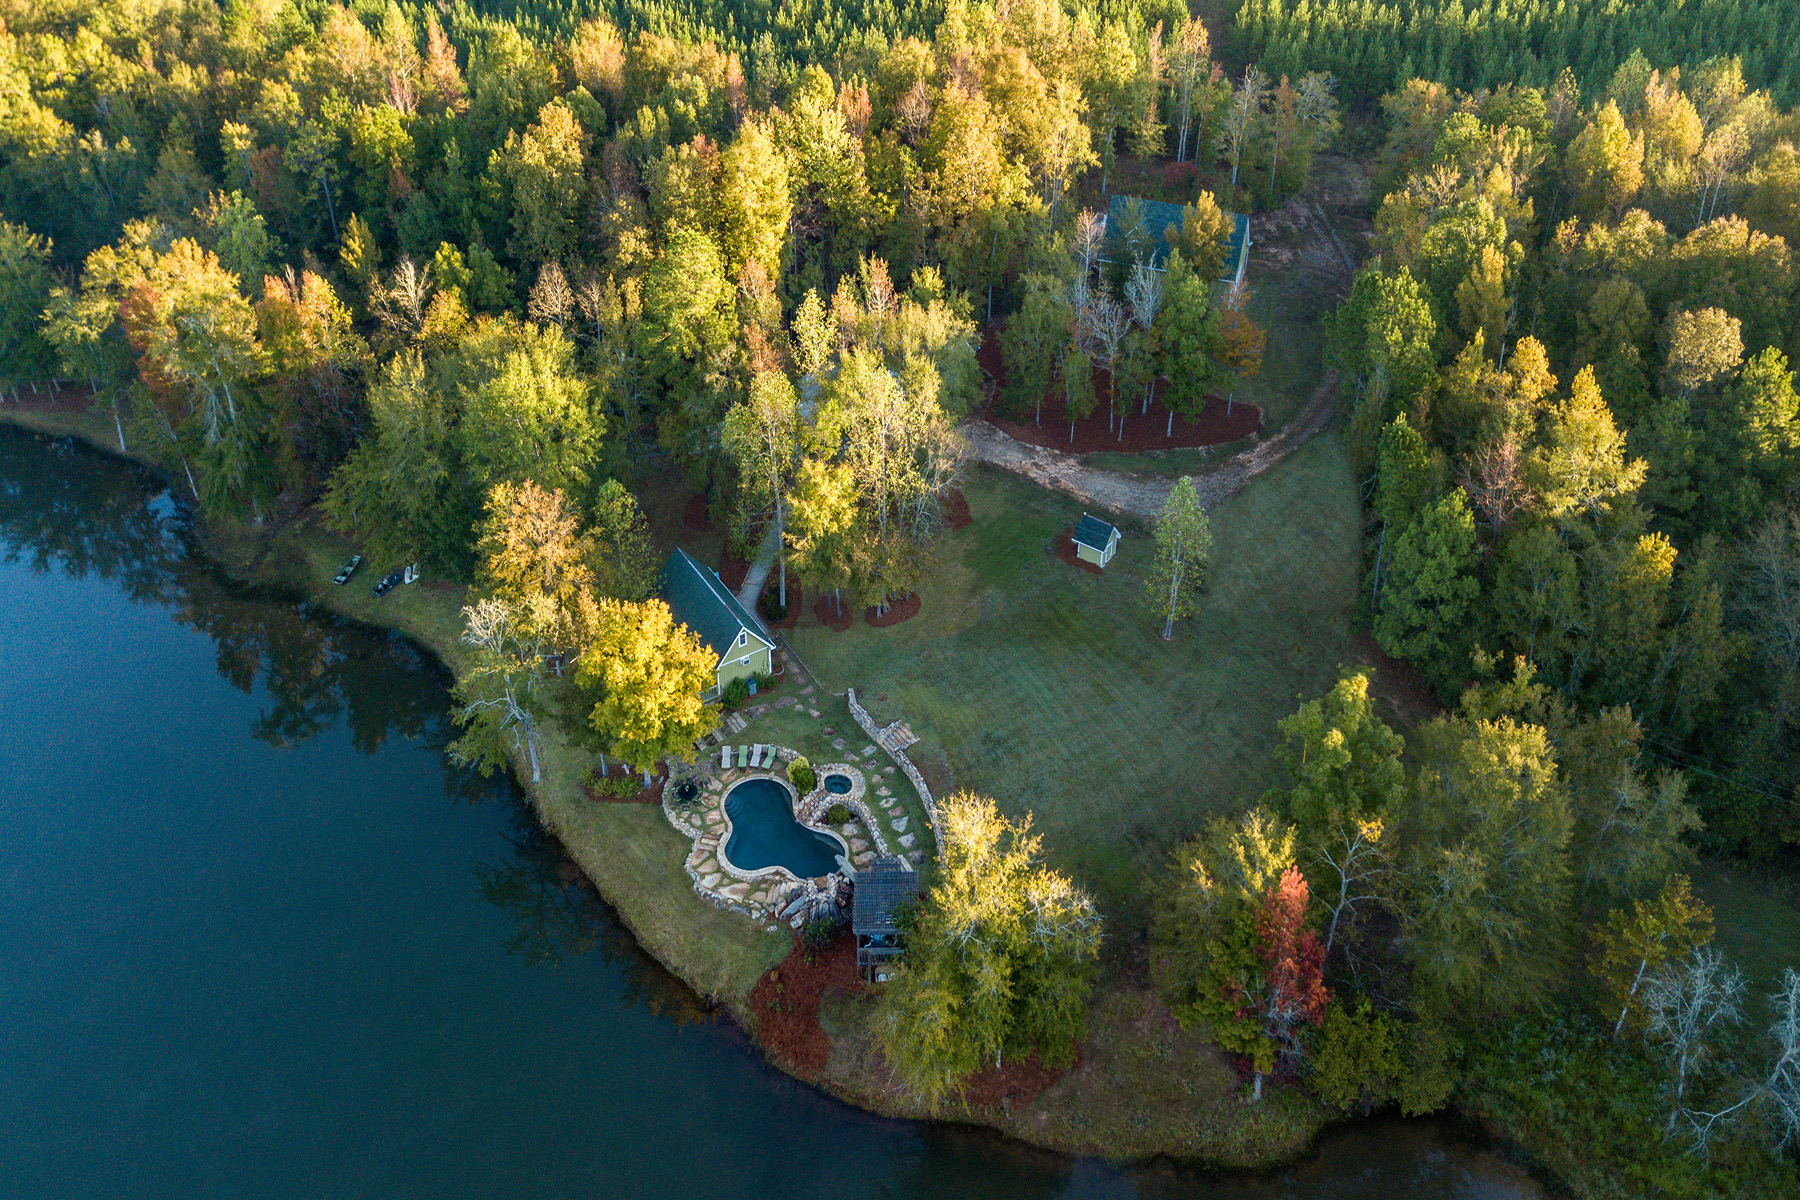 Eensgezinswoning voor Verkoop op Looking For That Amazing Getaway? 98 Private Acres Just Outside of Macon! 5098 Crescent Road Dry Branch, Georgië 31020 Verenigde Staten